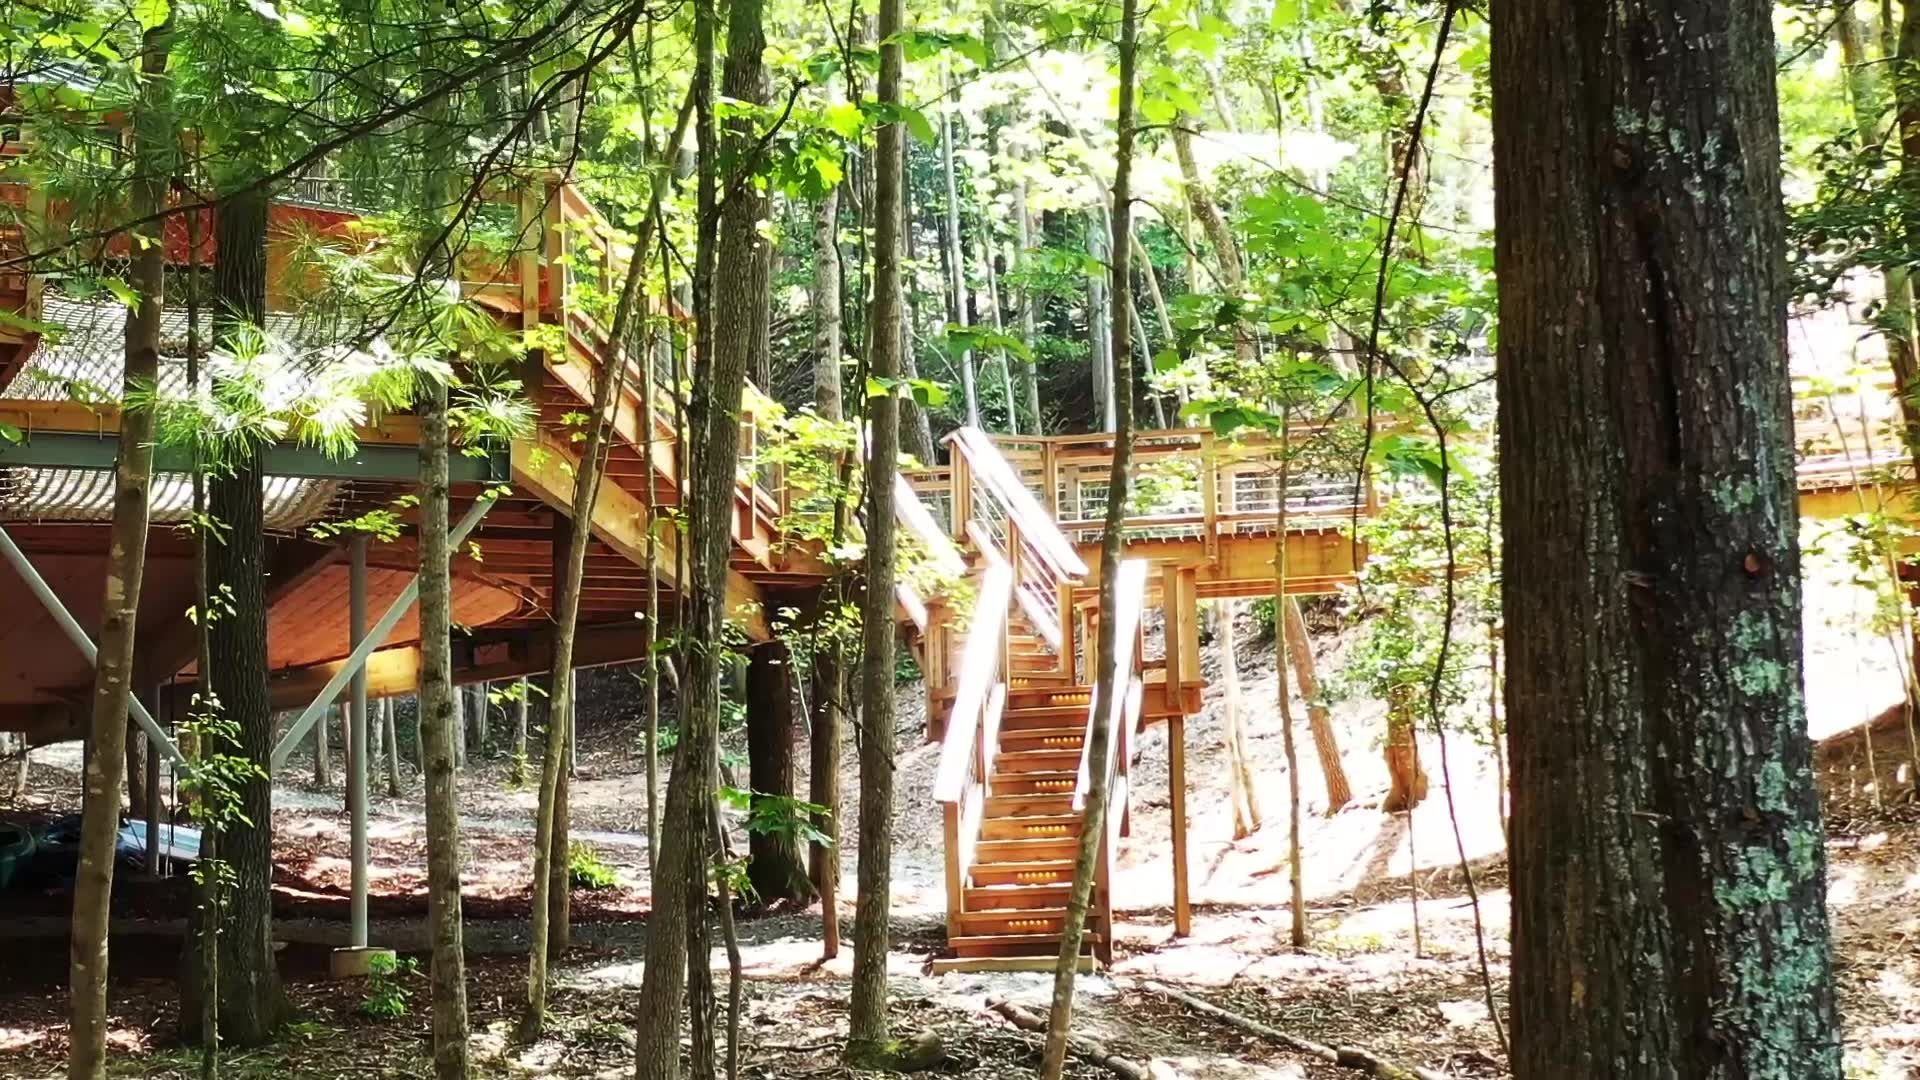 This Epic Treehouse Was Inspired by the Millennium Falcon